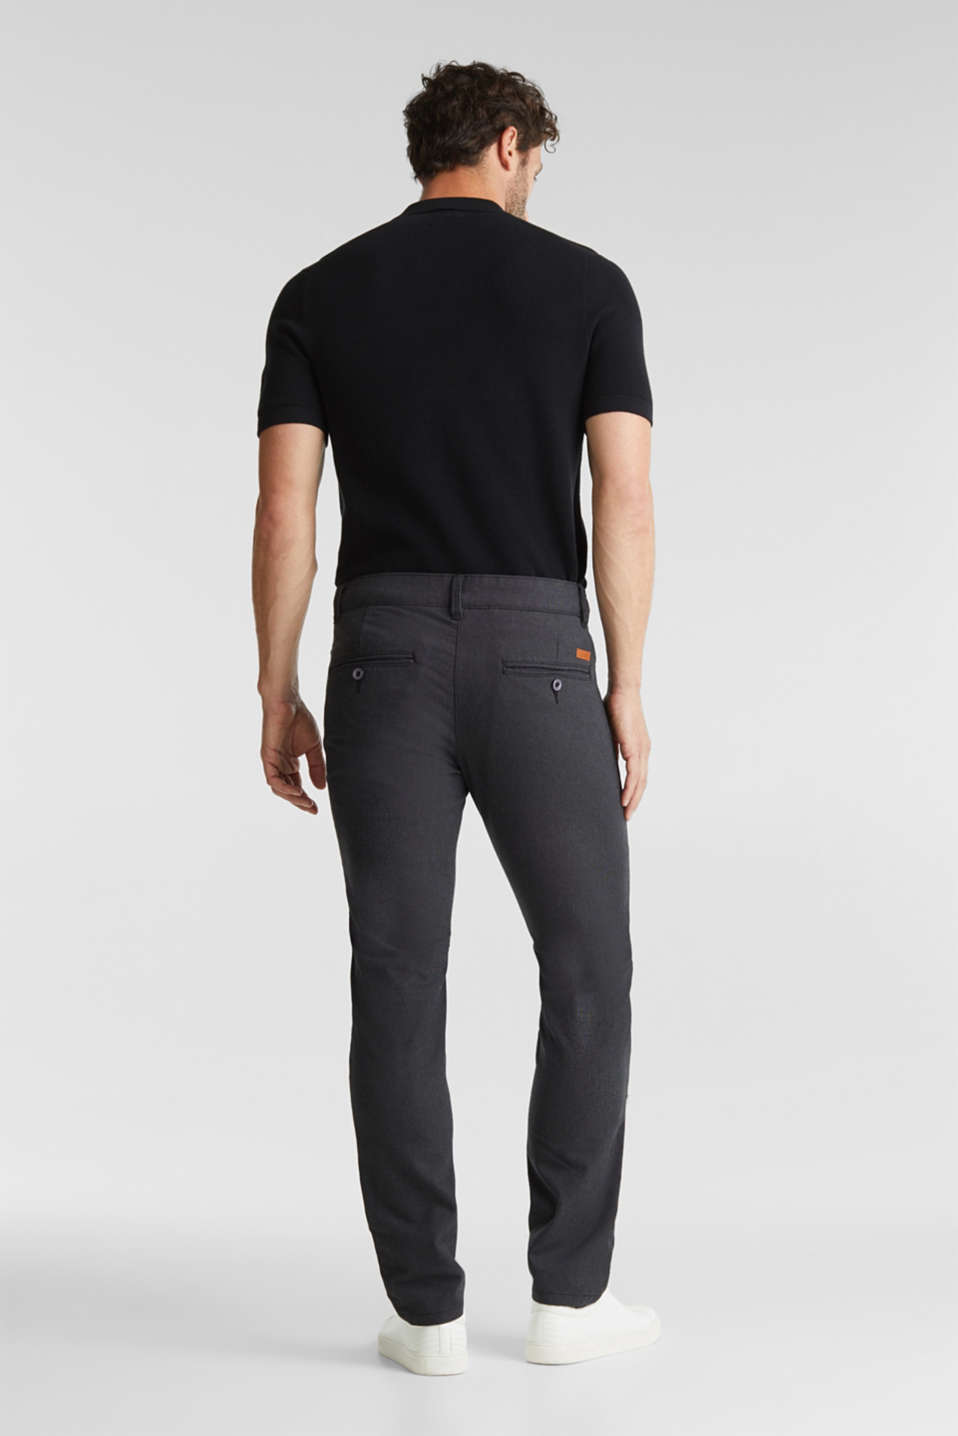 Stretch twill trousers with a belt, ANTHRACITE, detail image number 2